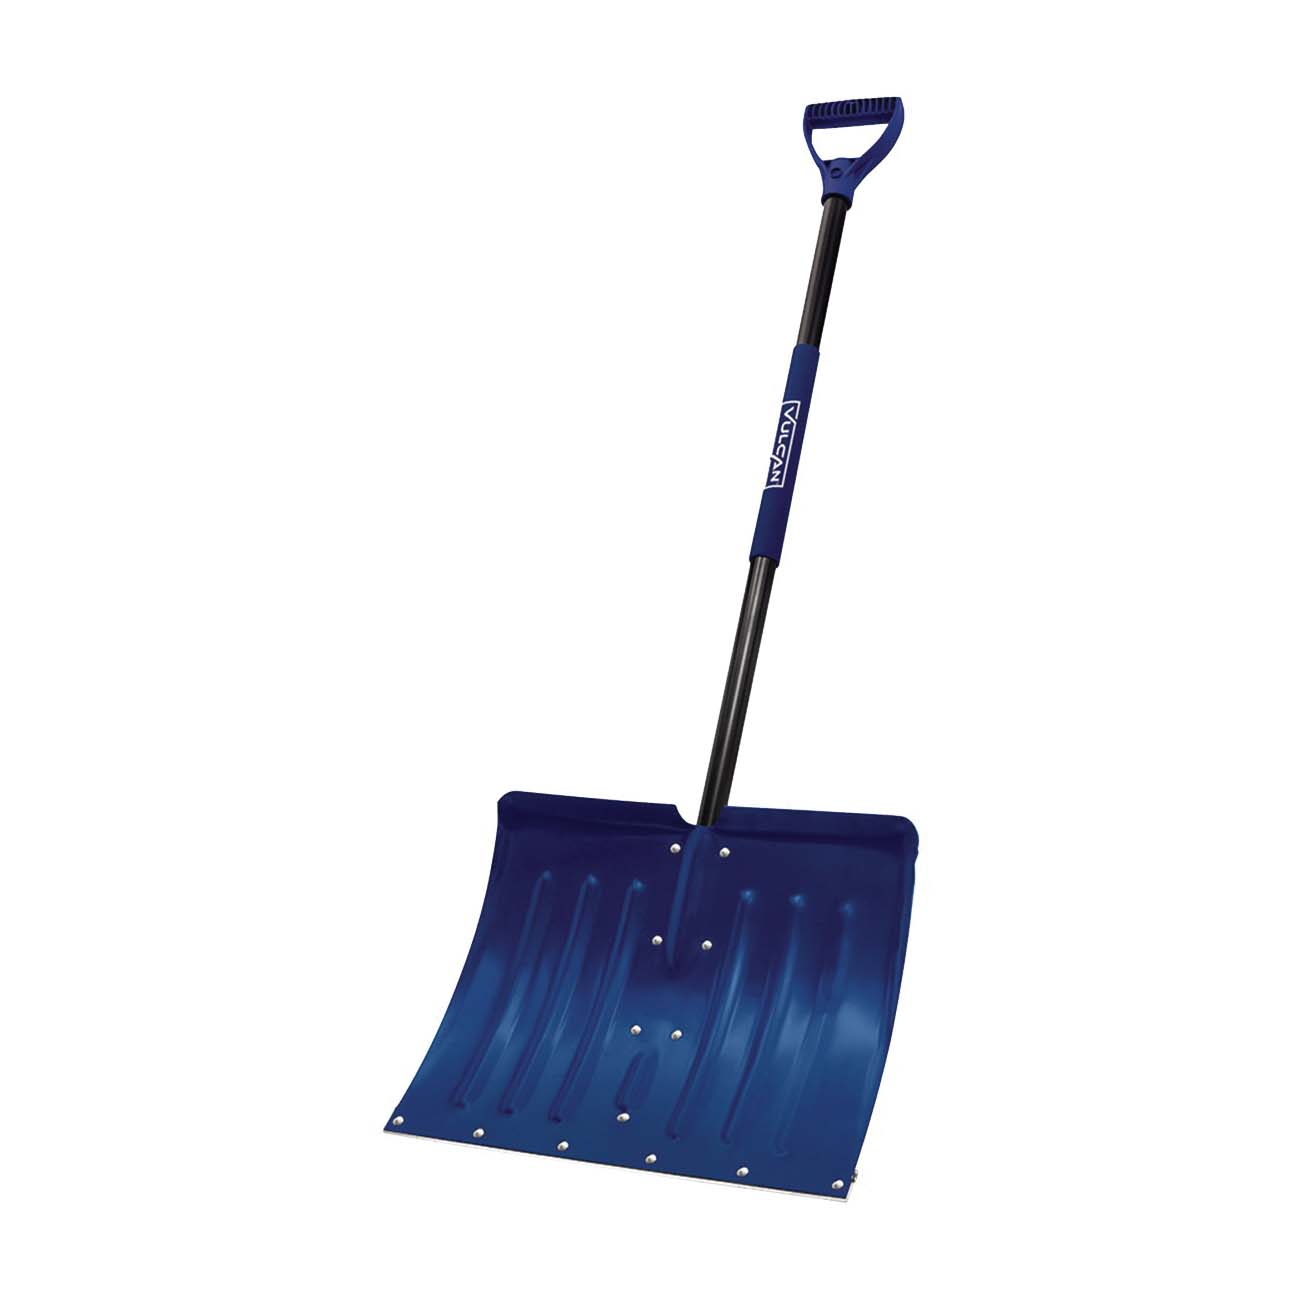 Picture of Vulcan 34634 Snow Shovel with Sleeve, 18 in L Blade, Aluminum Blade, Steel Handle